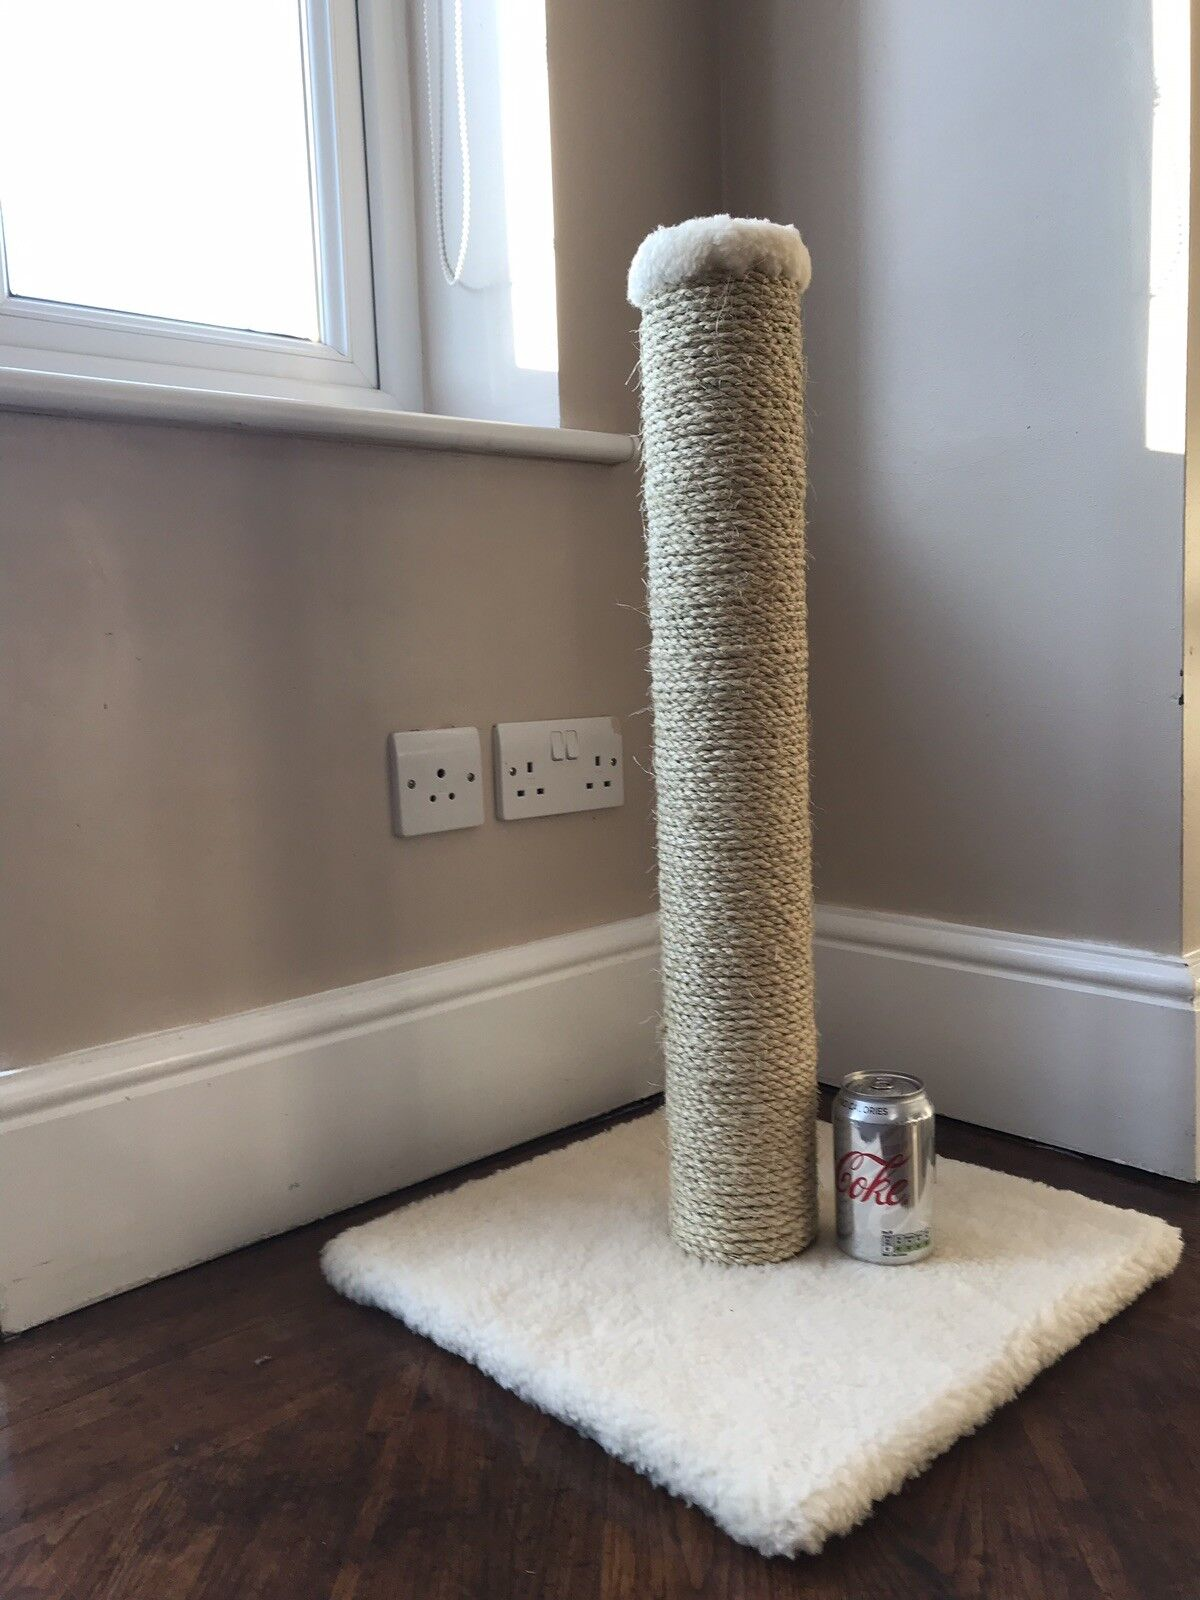 6mm Sisal rope Large Cat Scratcher Scratching Post 660mm Tall,